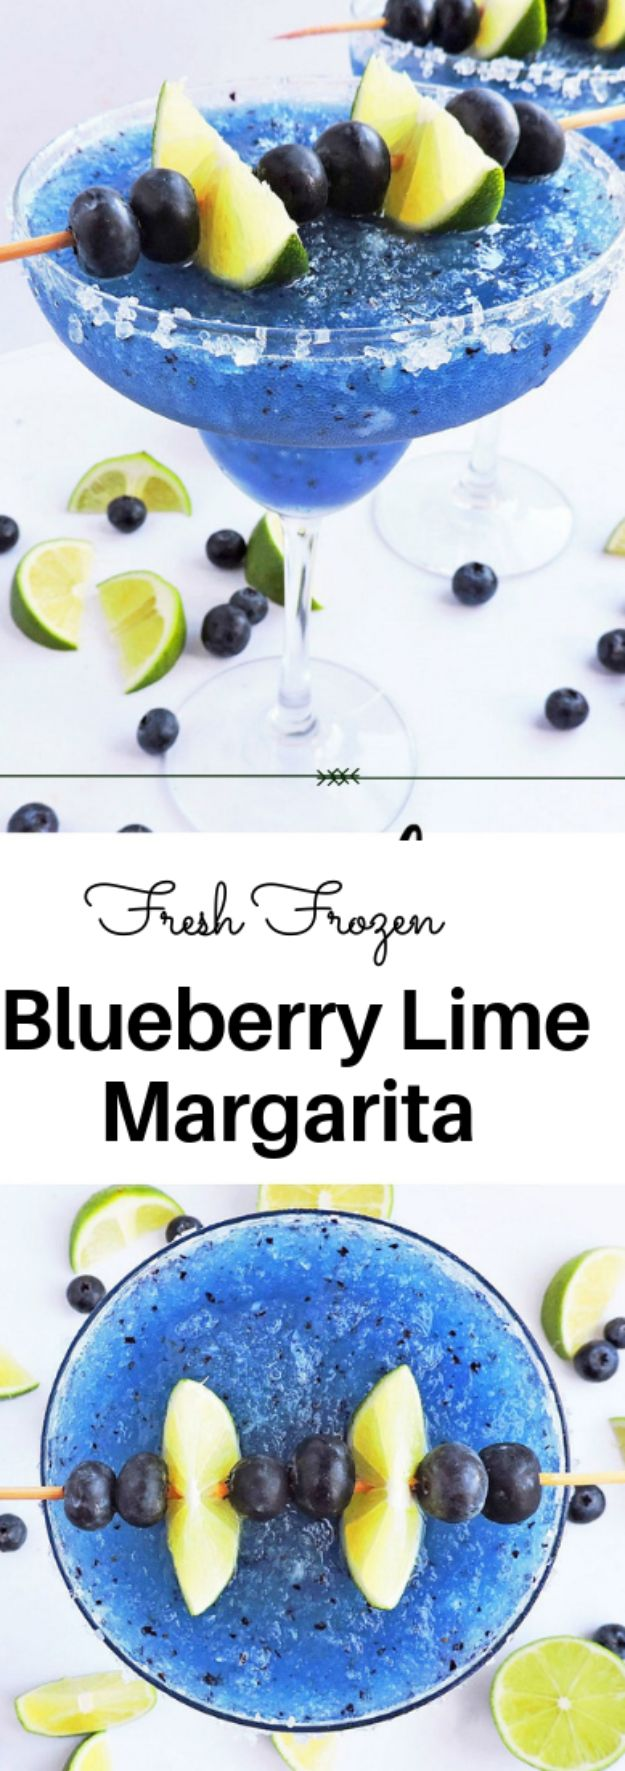 Margarita Recipes - Fresh Frozen Blueberry Lime Margarita - Drink Recipes for a Party - Recipe Ideas for Blender Margaritas - Lime, Strawberry, Fruit | Easy Drinks With Tequila